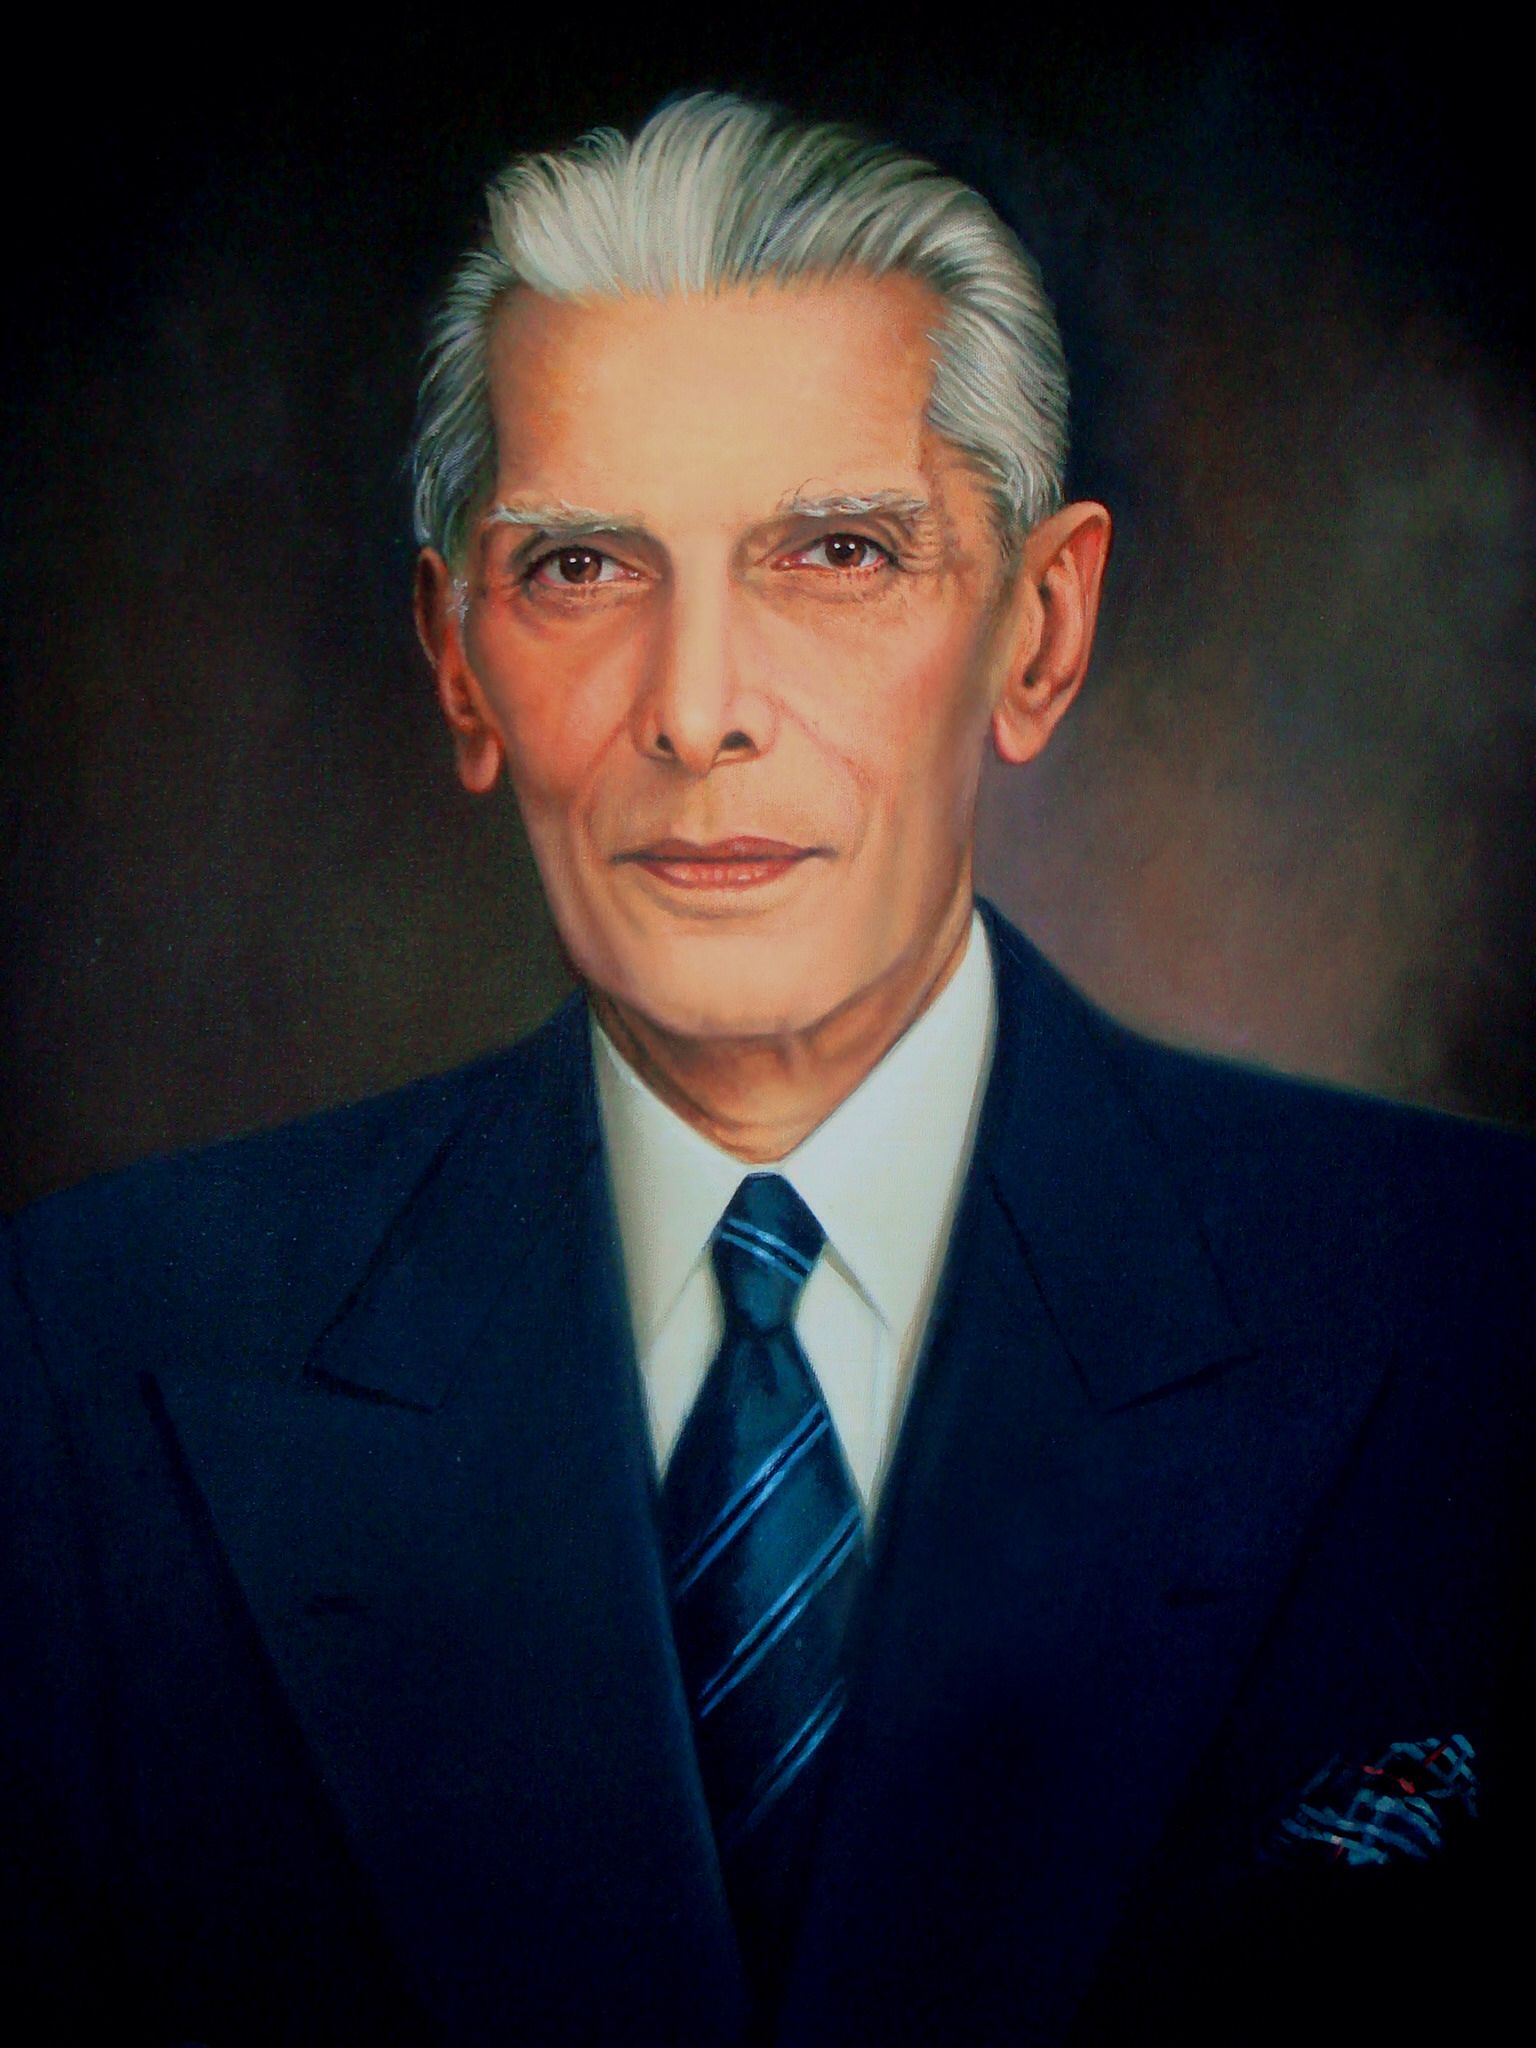 happy birthday to our beloved quaid e azam muhammad ali jinnah painting founder of mohammed ali jinnah